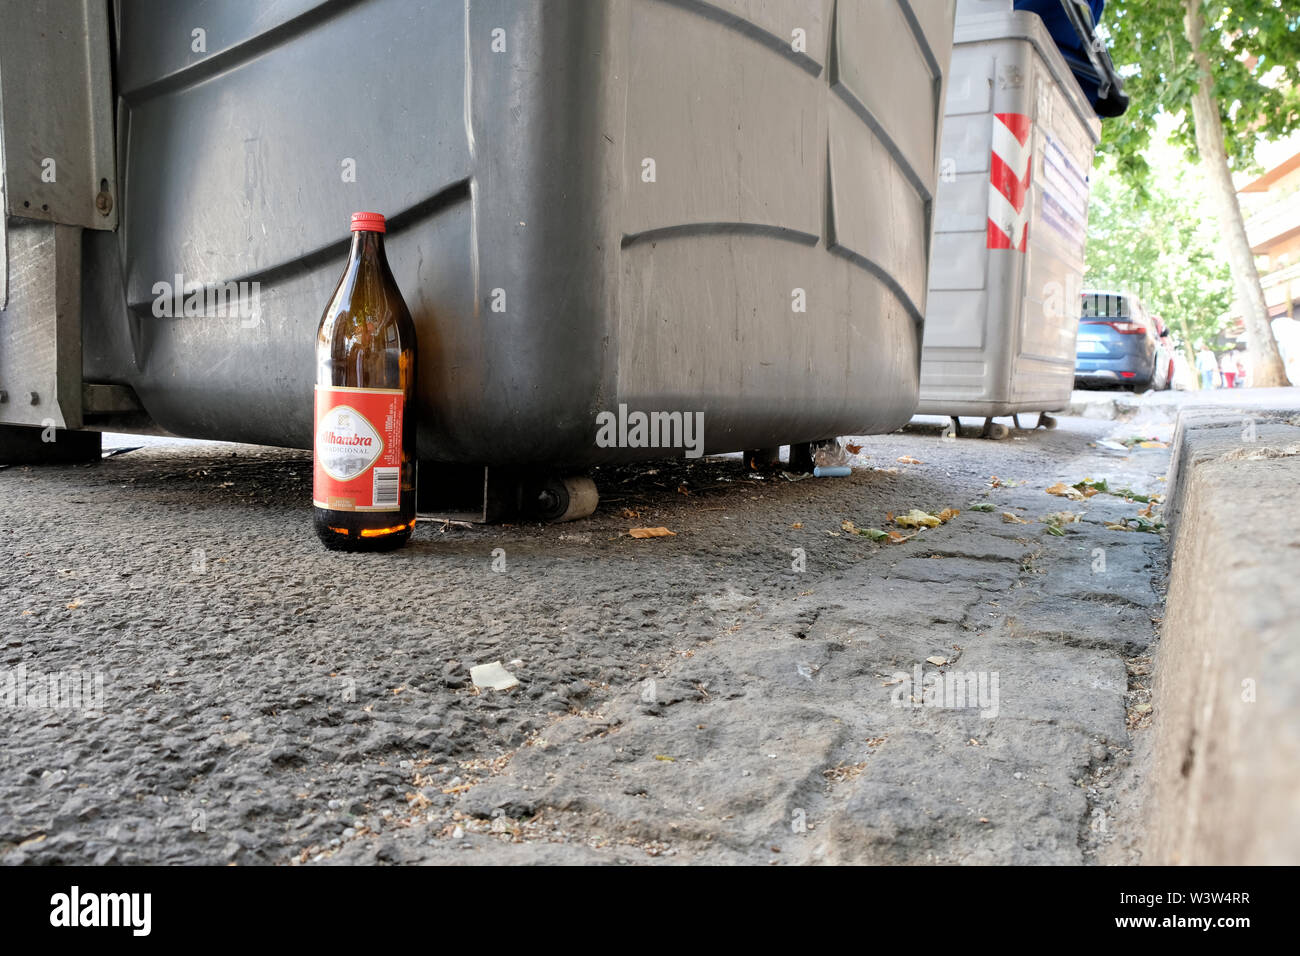 A one litre bottle of Alhmabra tradicional beer abandoned by the side of the street near a trash bin and sidewalk in Granada, Spain. - Stock Image